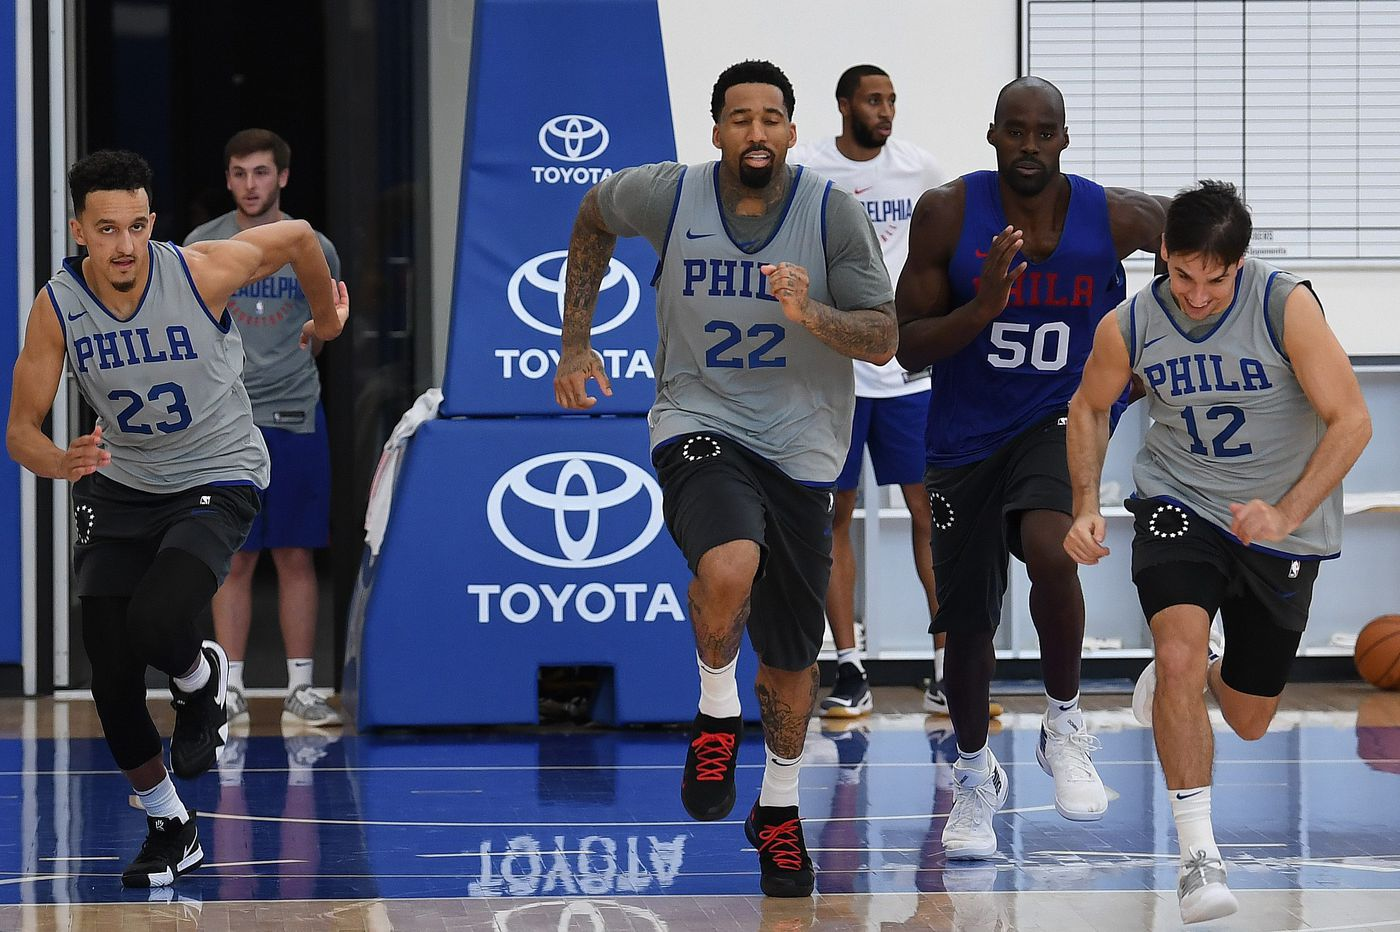 Without Wilson Chandler in mix, Sixers still a work in progress